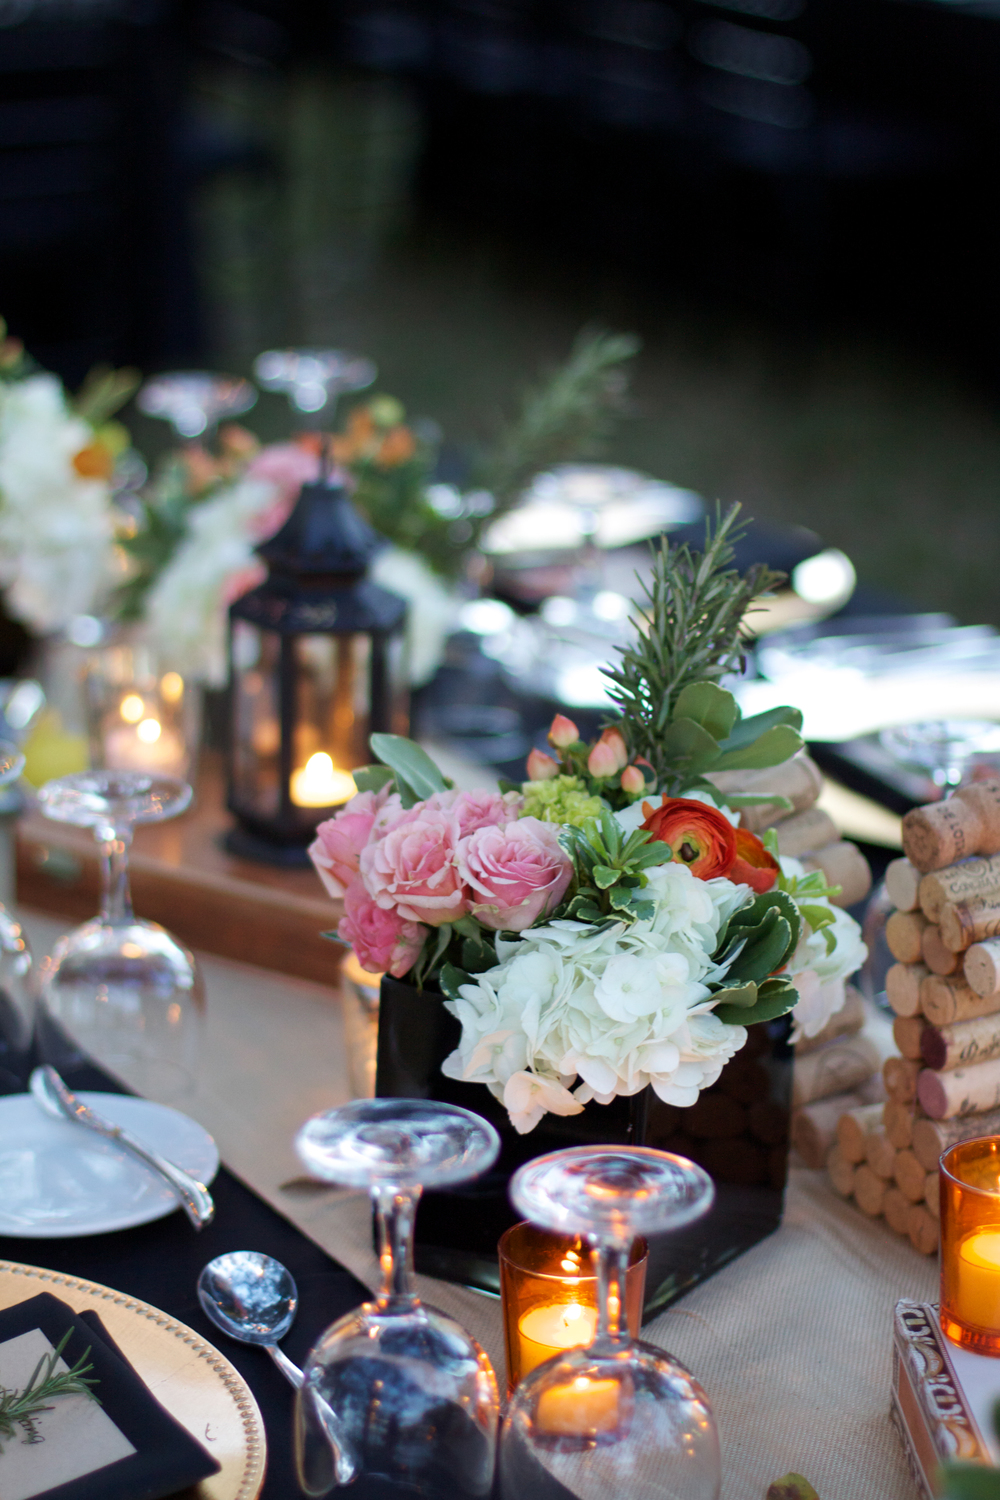 Centerpieces featured collections of cigar boxes, lanterns, candles, and onyx vases of fresh flowers